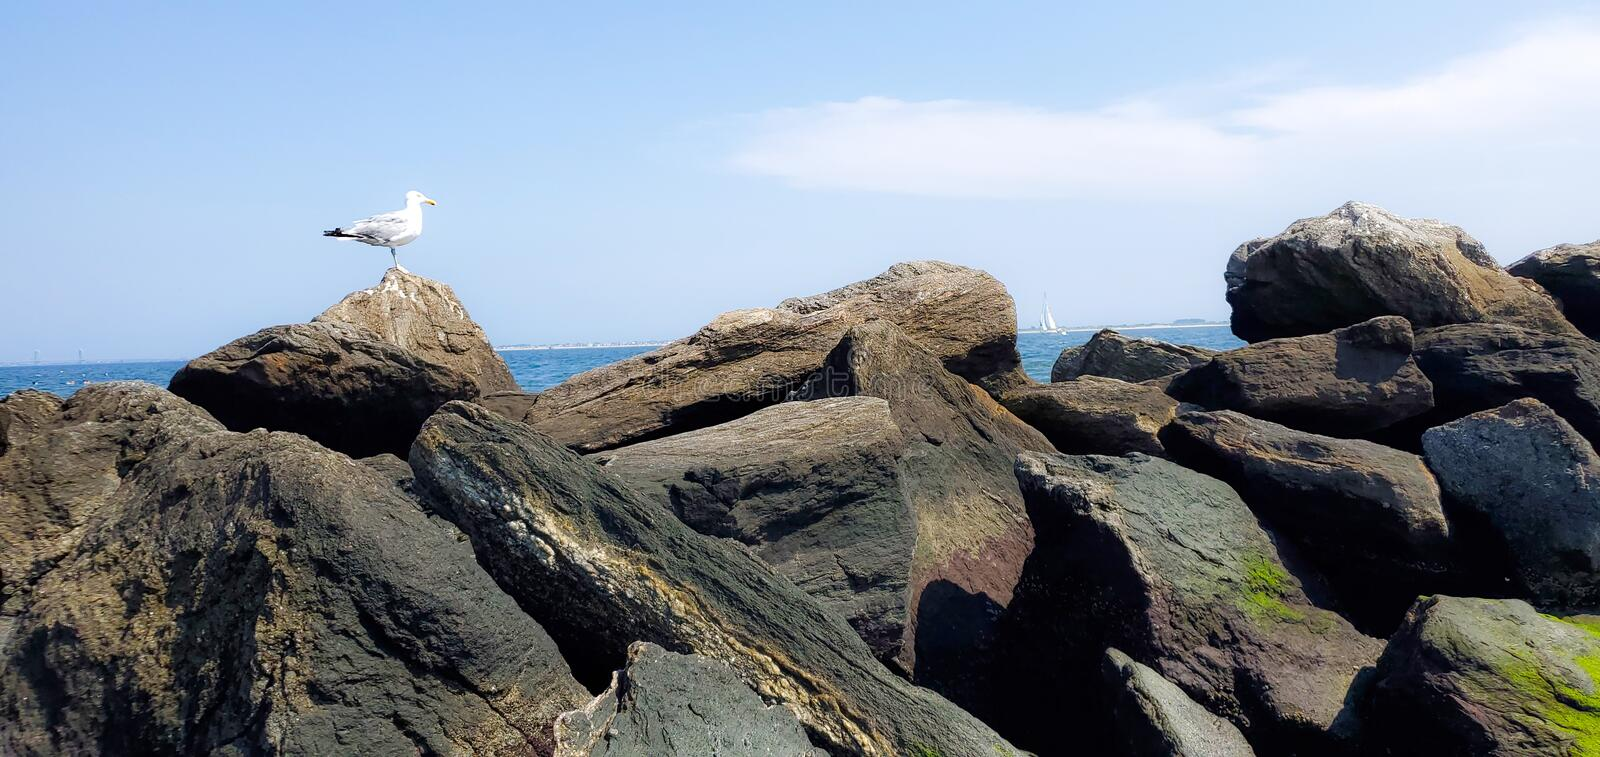 Seagull sitting on rocks by ocean royalty free stock photos